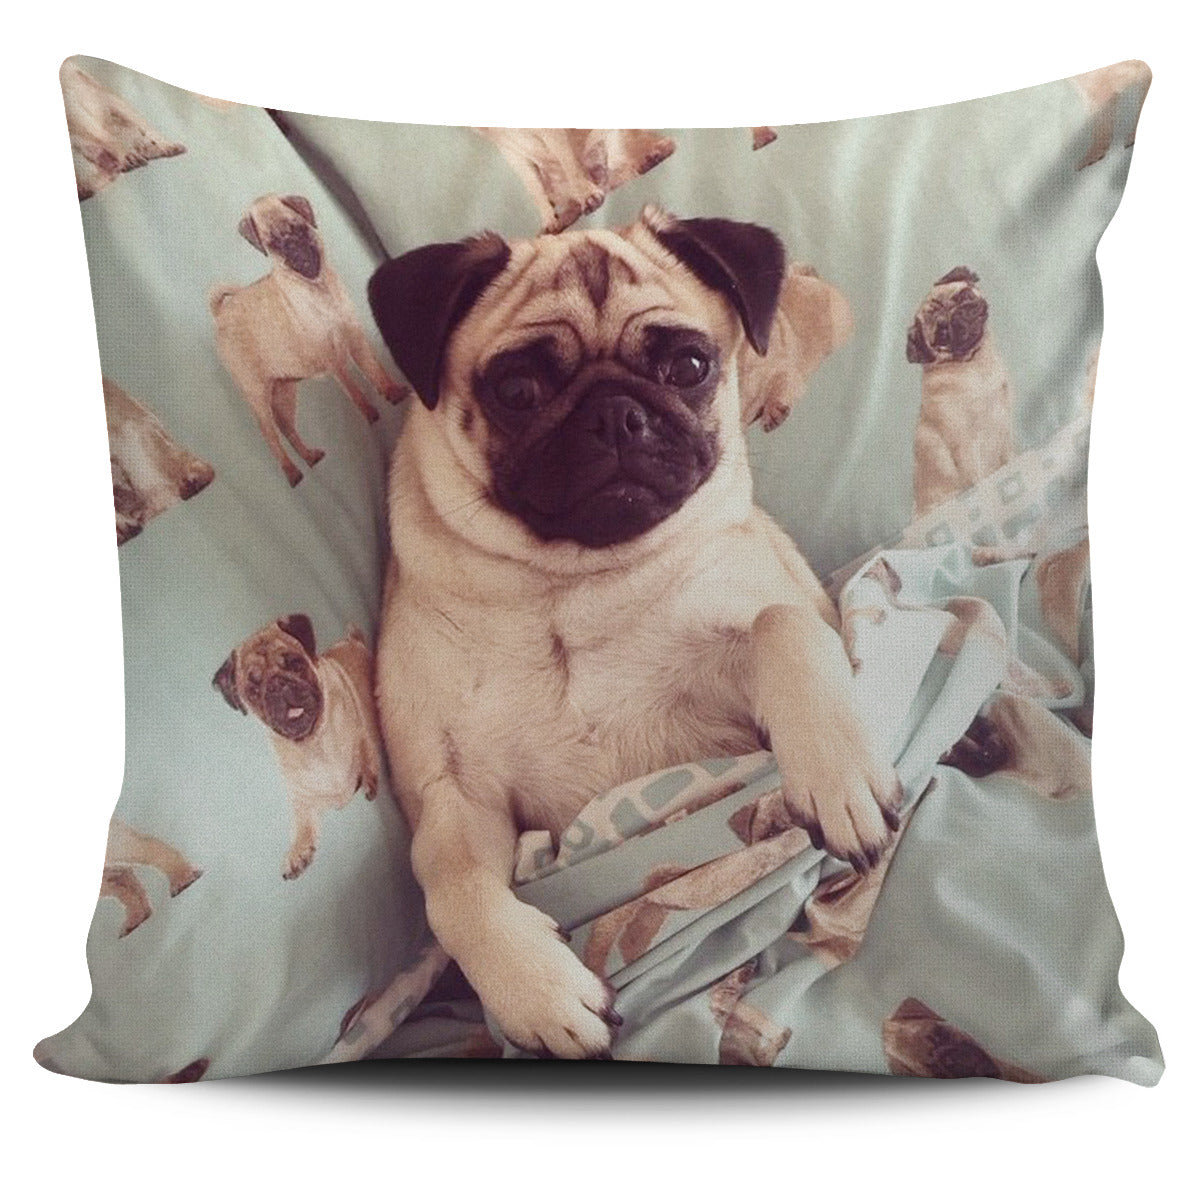 Pug In A Blanket Pillow Cover - pug bestseller